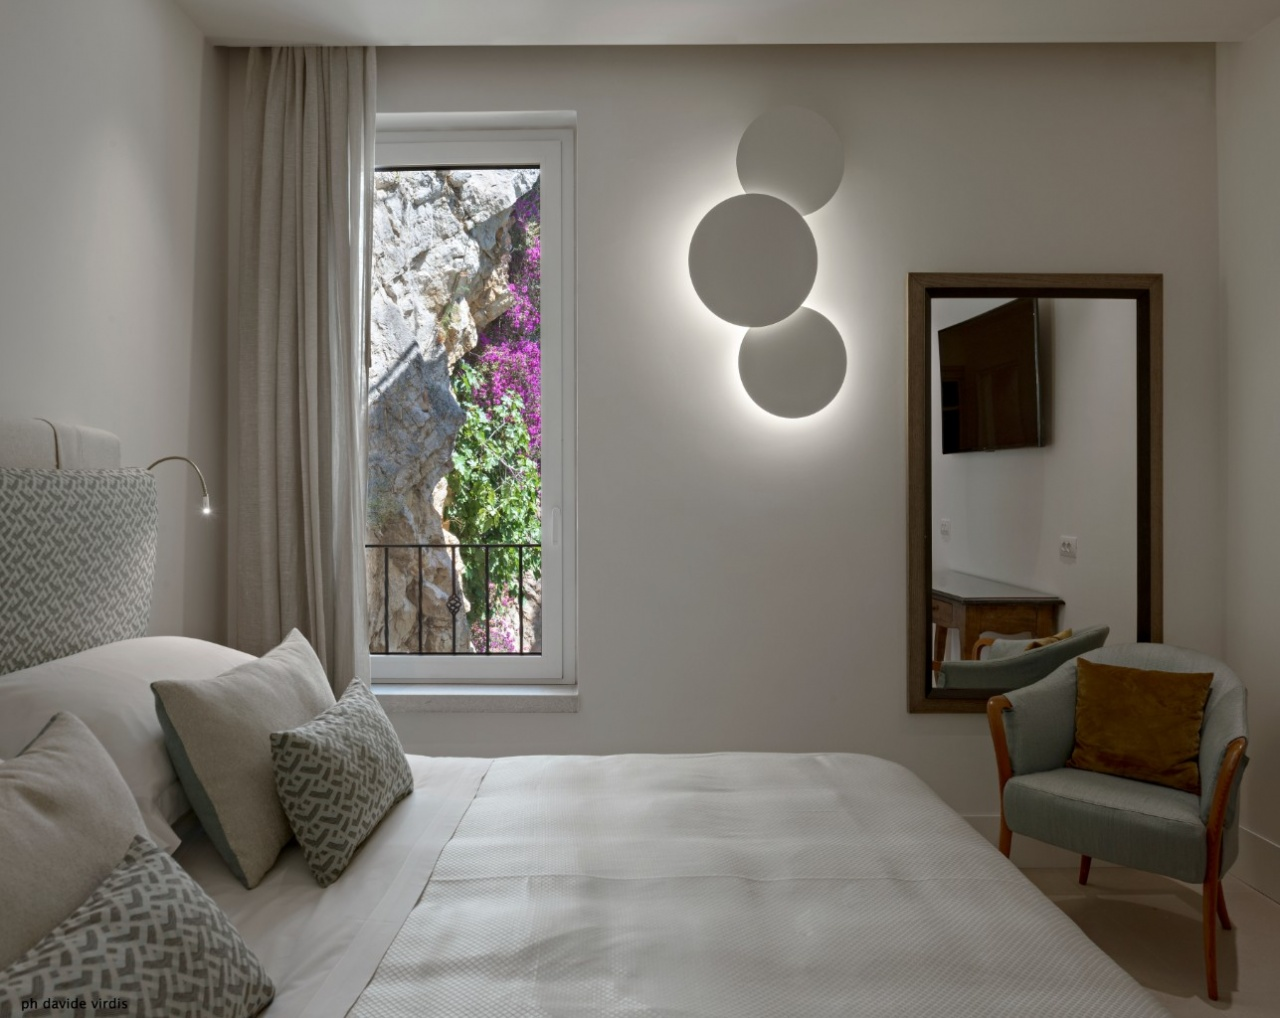 Rock family suite | Appartamenti a Taormina | Vacanze in Sicilia | Hotel 4 stelle | Boutique Hotel Taormina